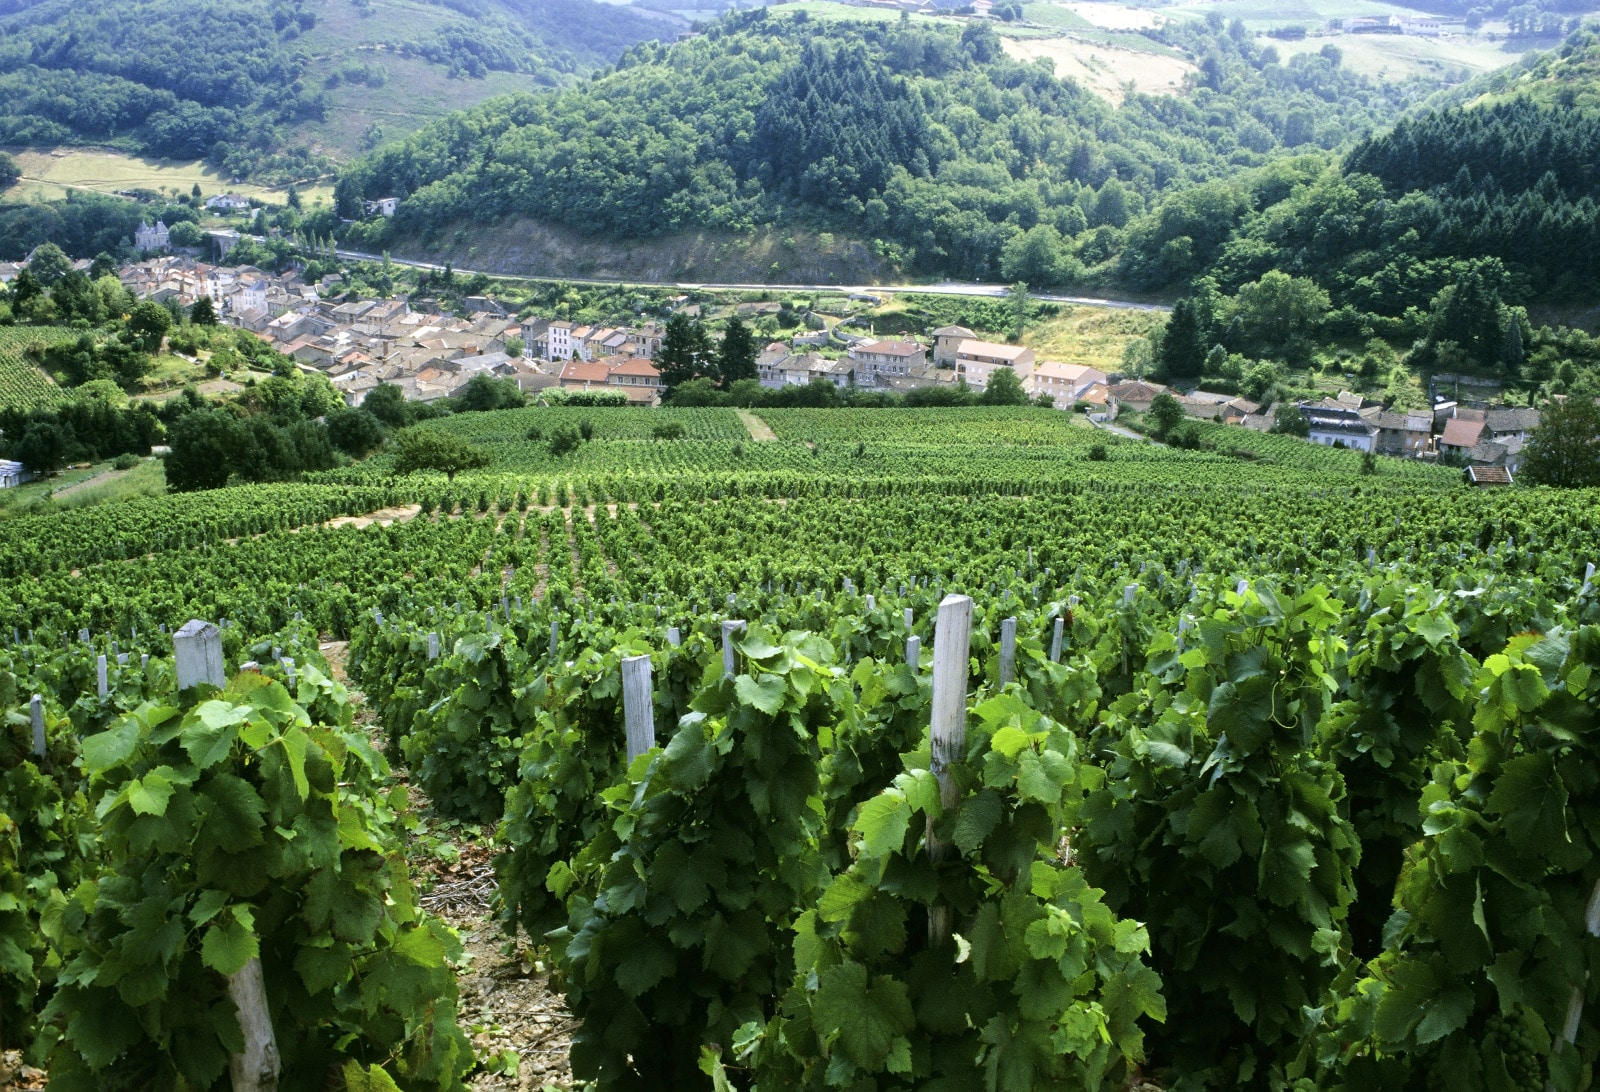 Where Does Roussanne Come From